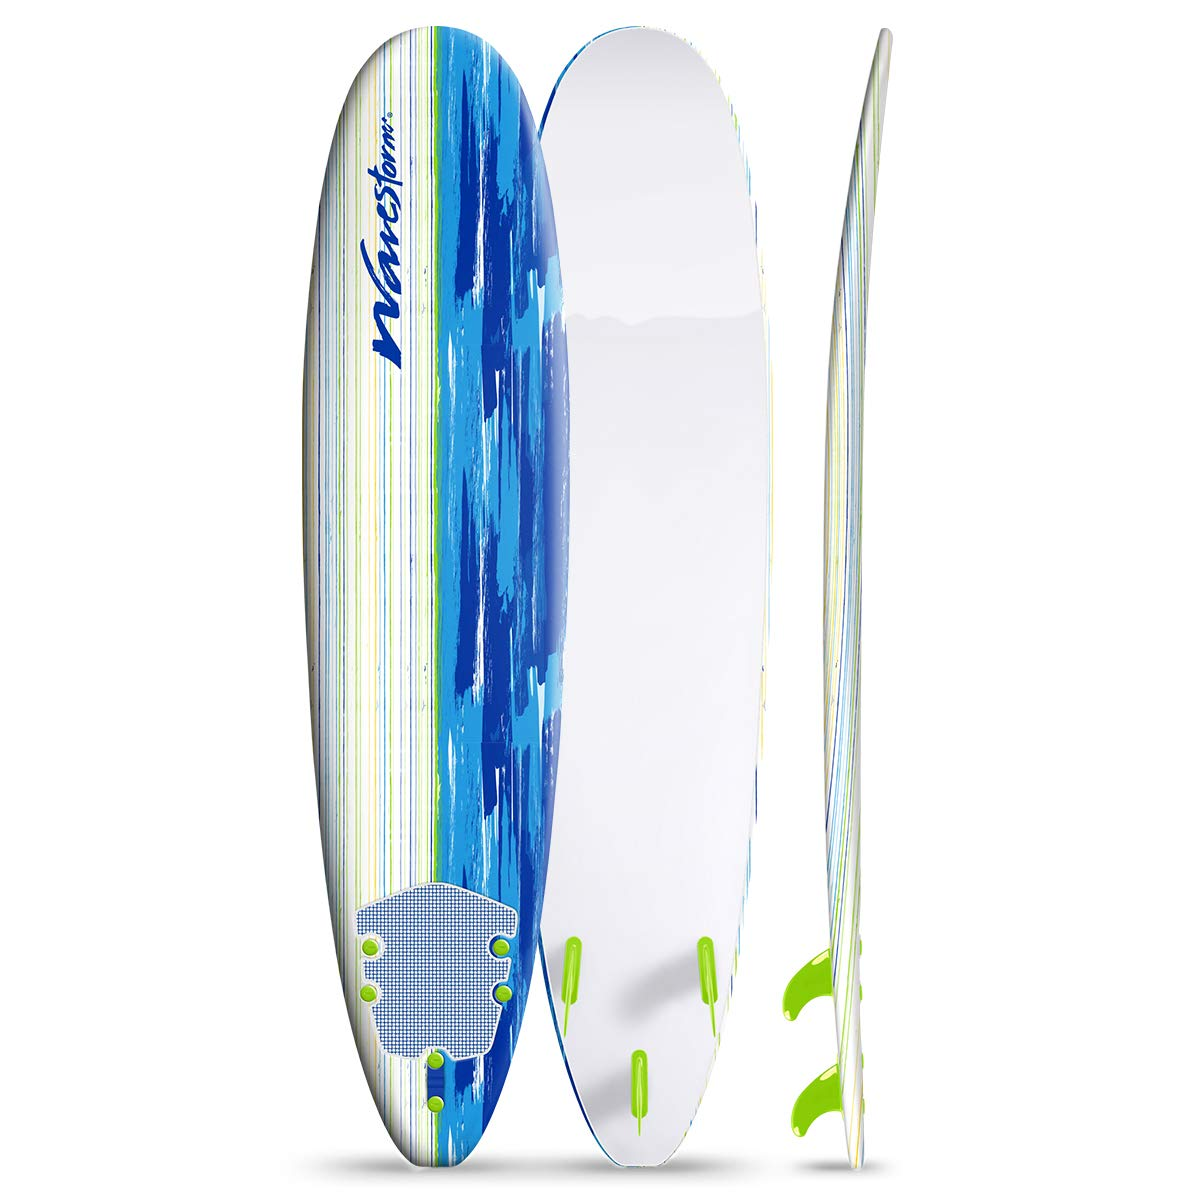 Wavestorm 8 Surfboard, Brushed Graphic